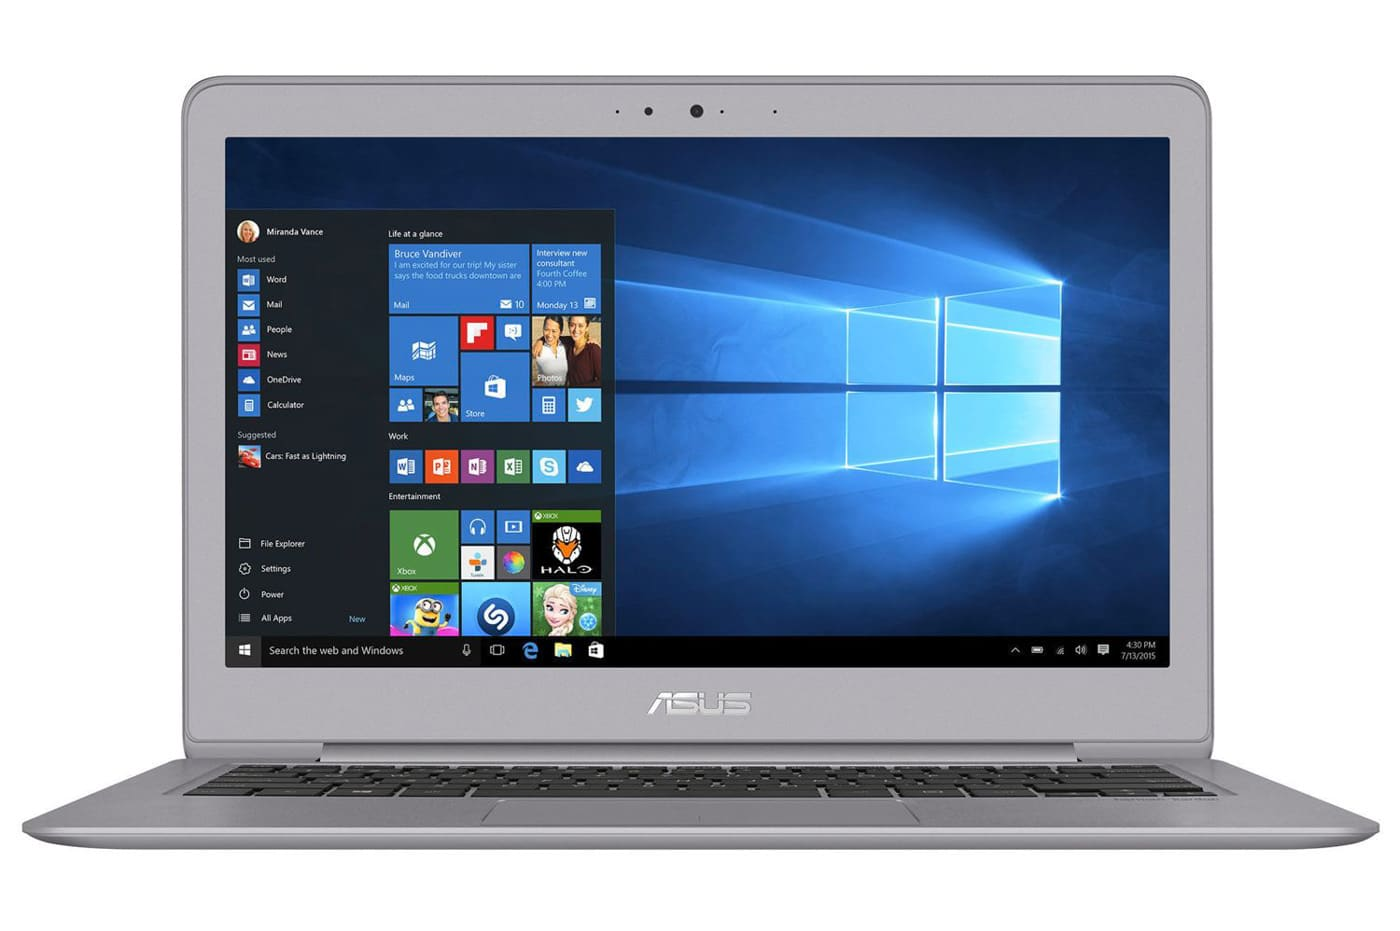 Asus ZenBook UX330CA-FC034T, ultrabook 13 pouces m3 Kaby SSD IPS promo 679€